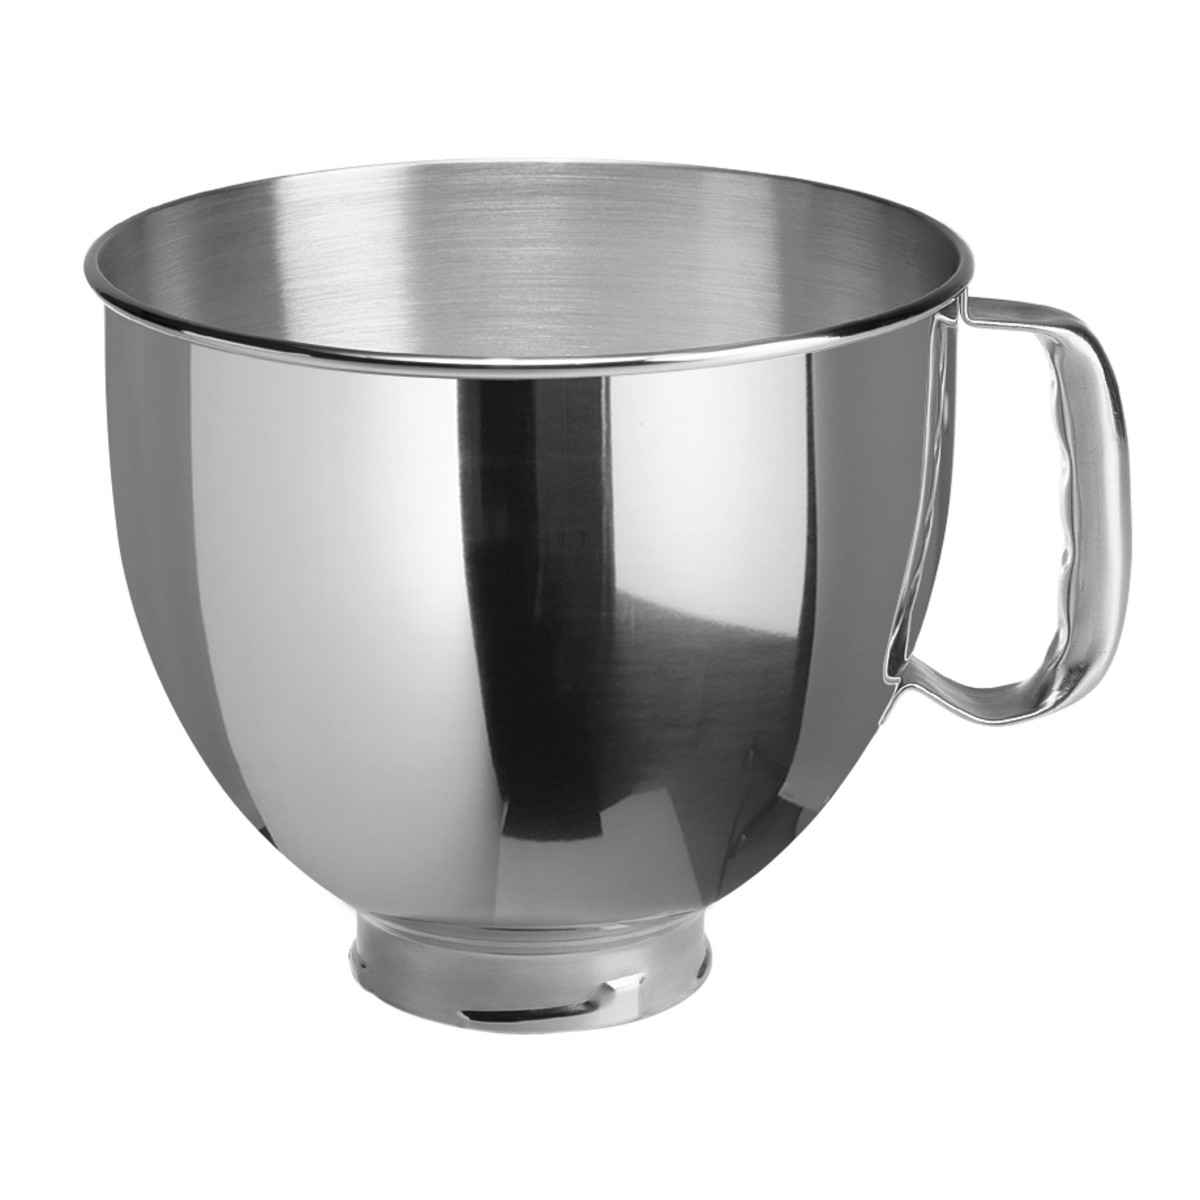 KitchenAid stainless steel bowls